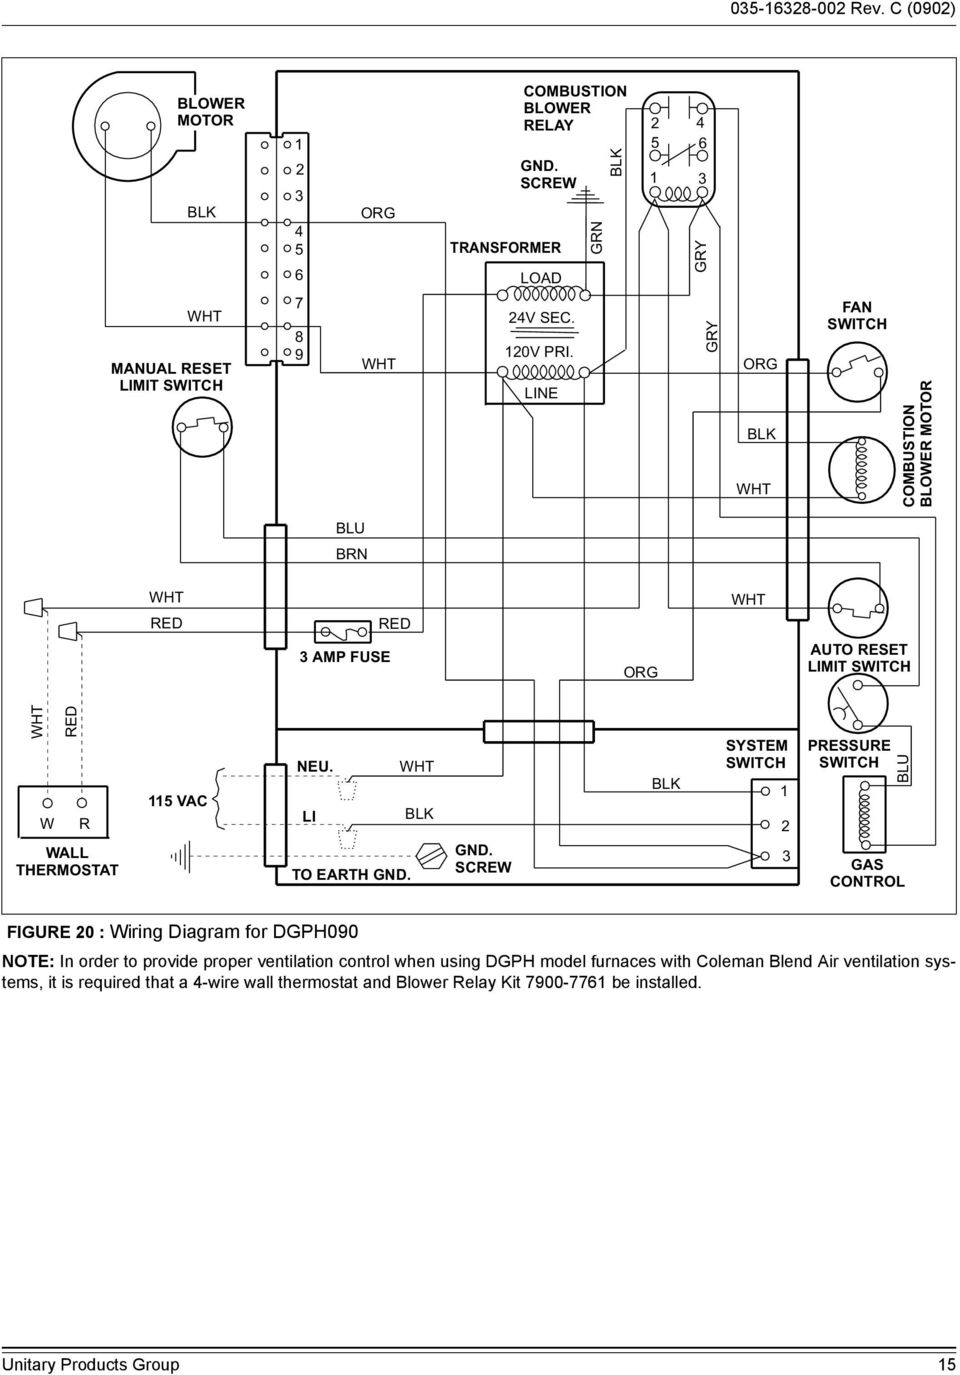 Installation Instruction Pdf One Two Furnaces Gas Furnace Thermostat Wiring Diagram Screw System 2 Pressure Blu Control Figure 20 For Dgph090